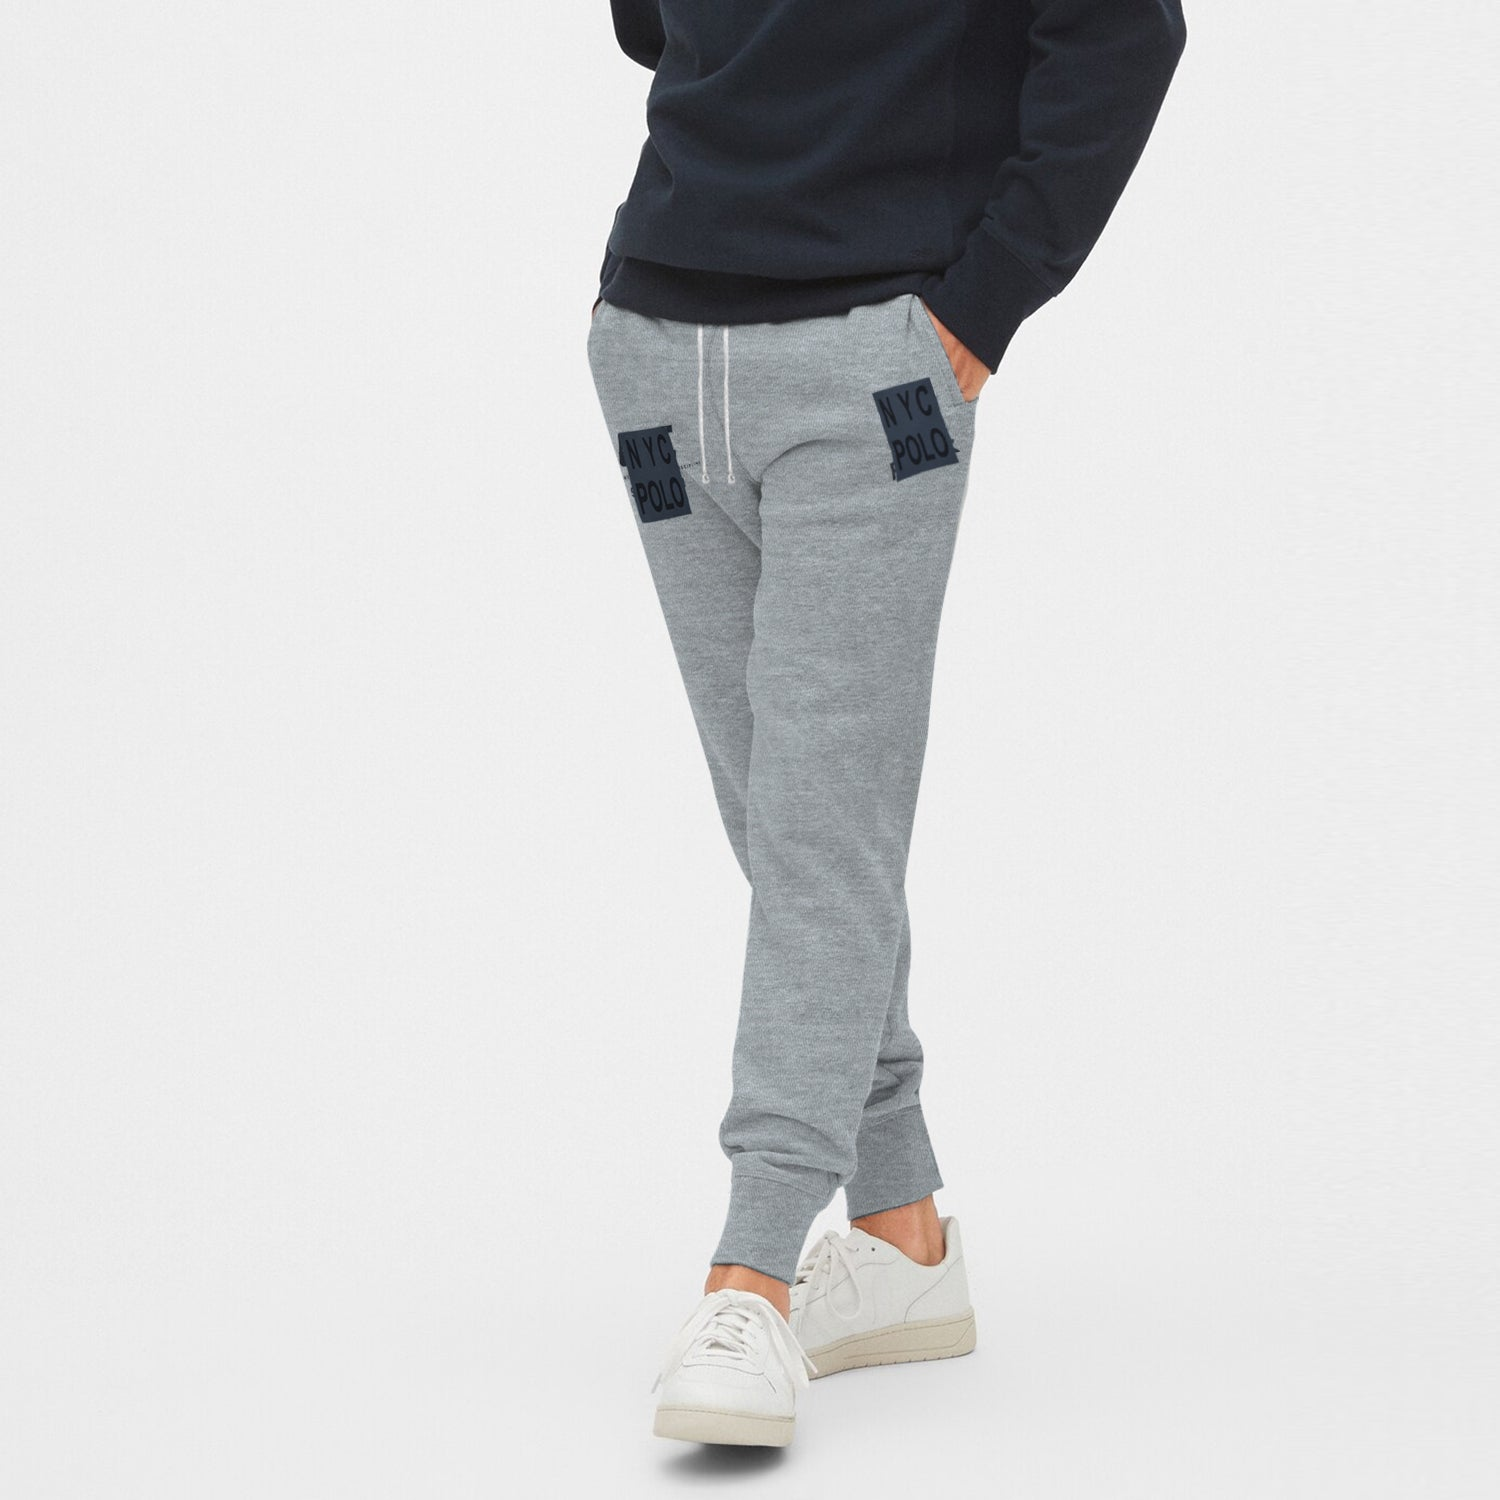 NYC Polo Terry Fleece Slim Fit Jogger Trouser For Men-Grey Melange-BE10449